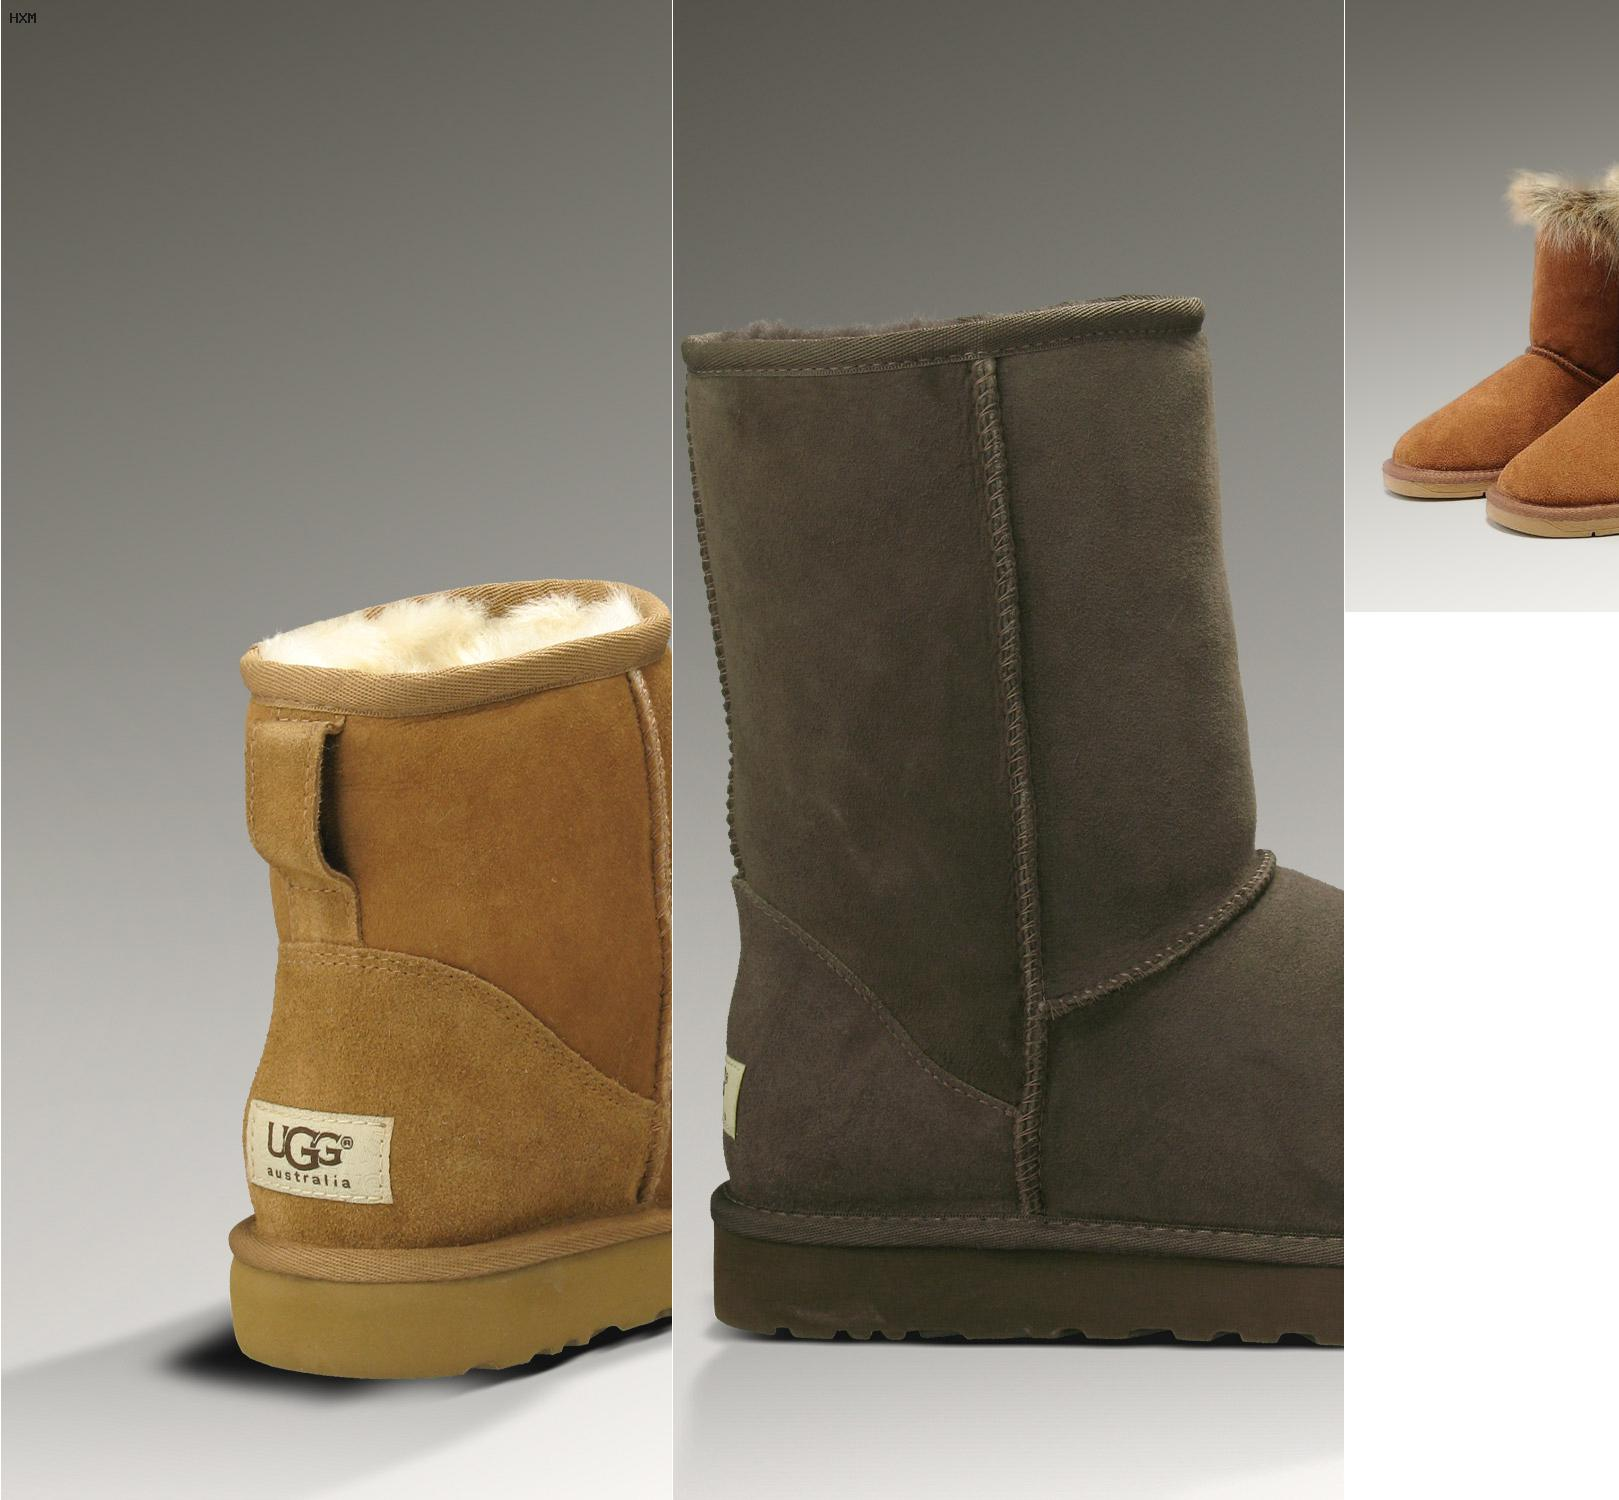 outlet ugg milano